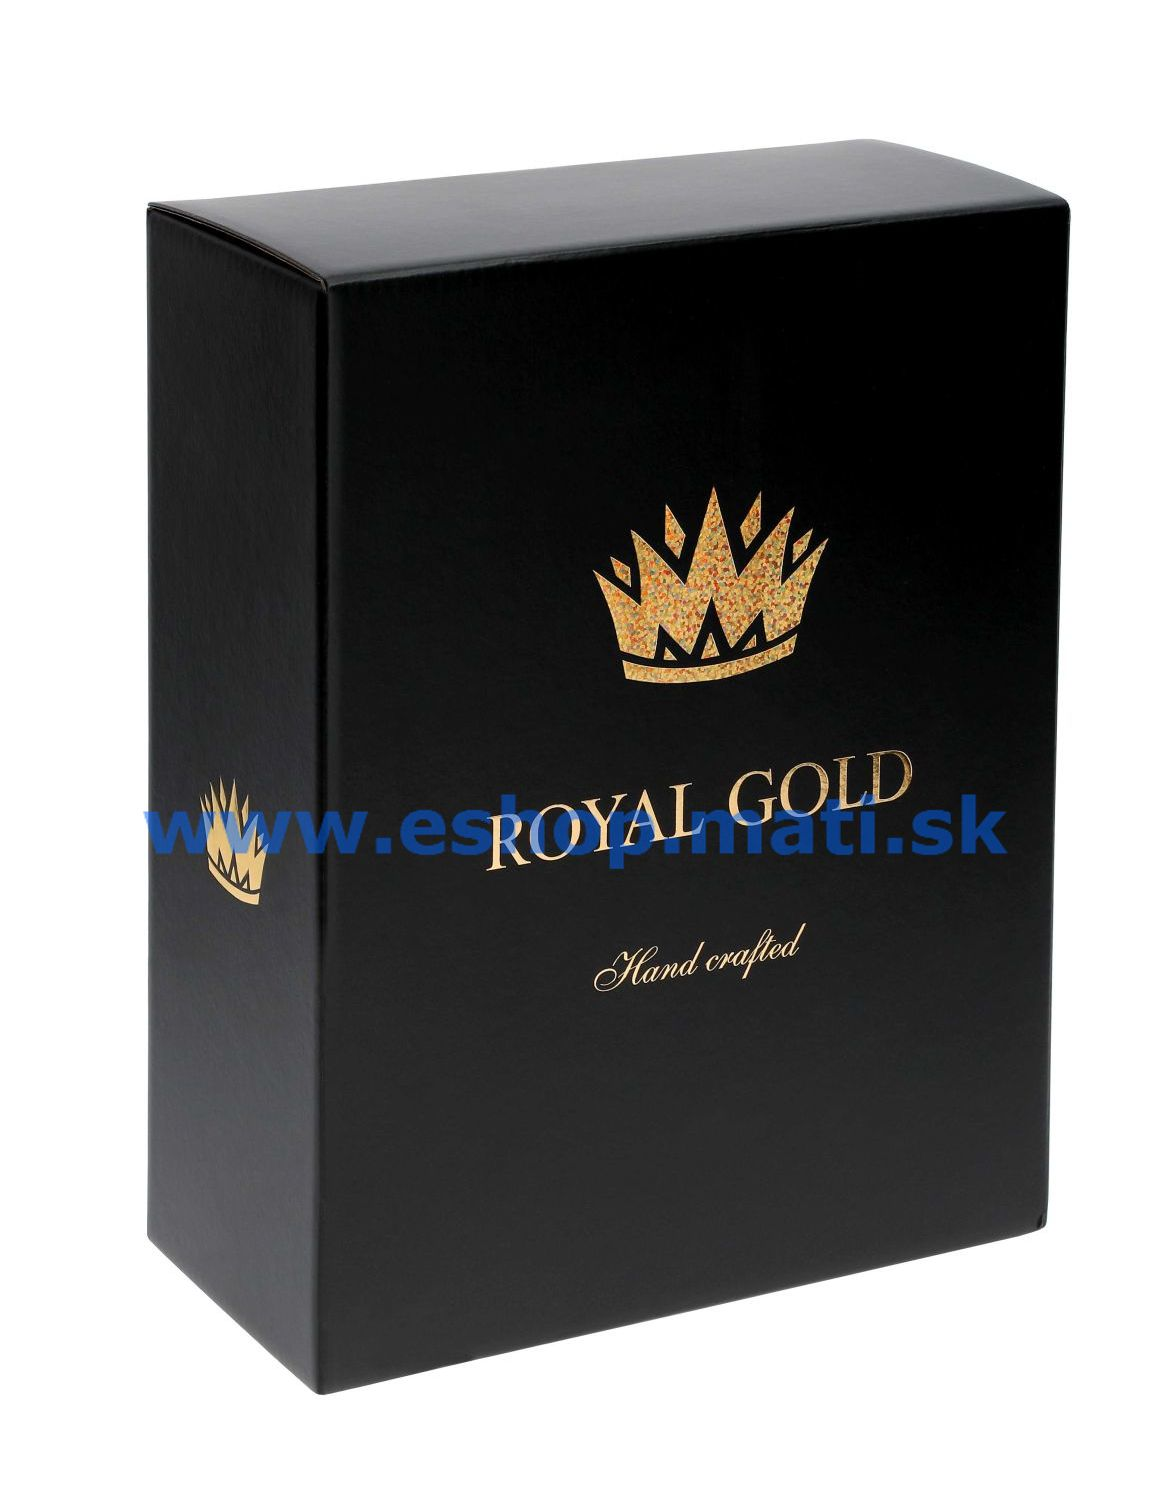 Kalich na víno Royal Gold 470ml 40352 Swarovski Crystals (2KS)